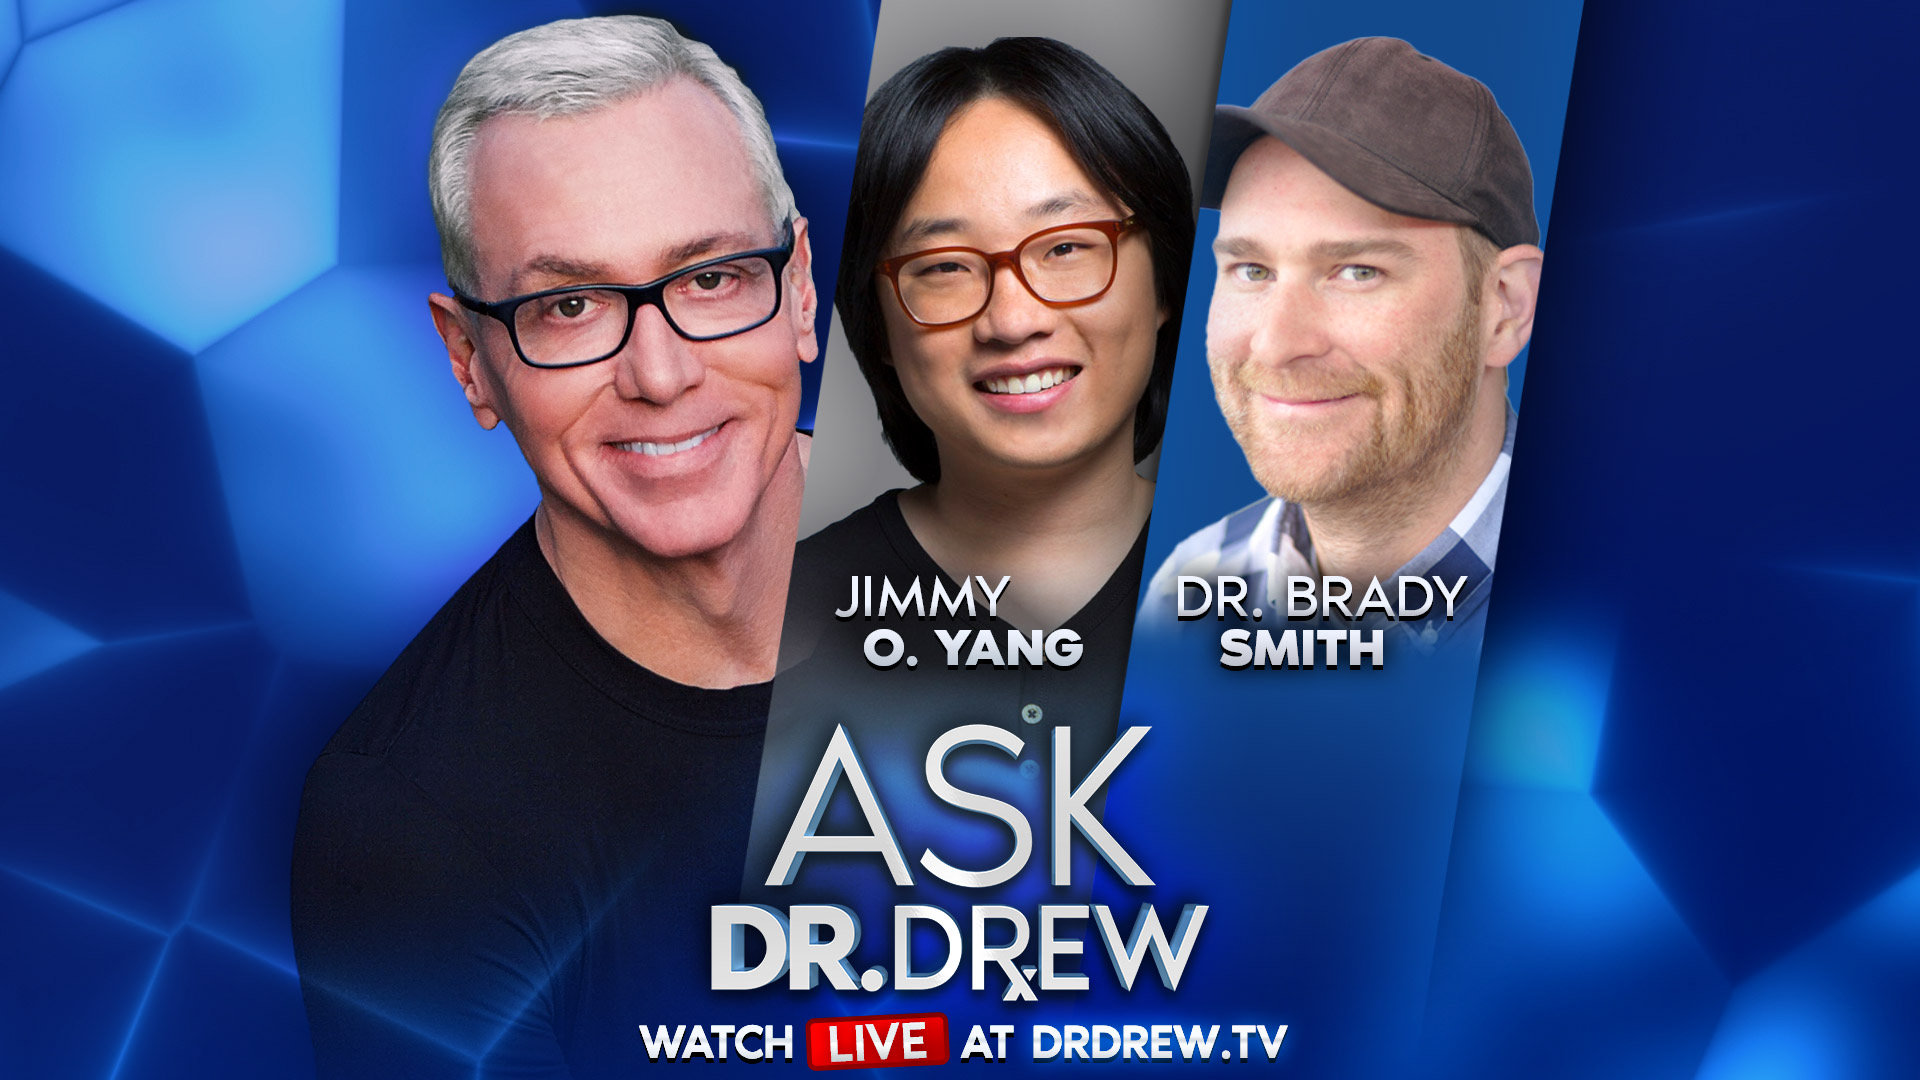 Ask Dr. Drew with Jimmy O. Yang & Dr. Brady Smith